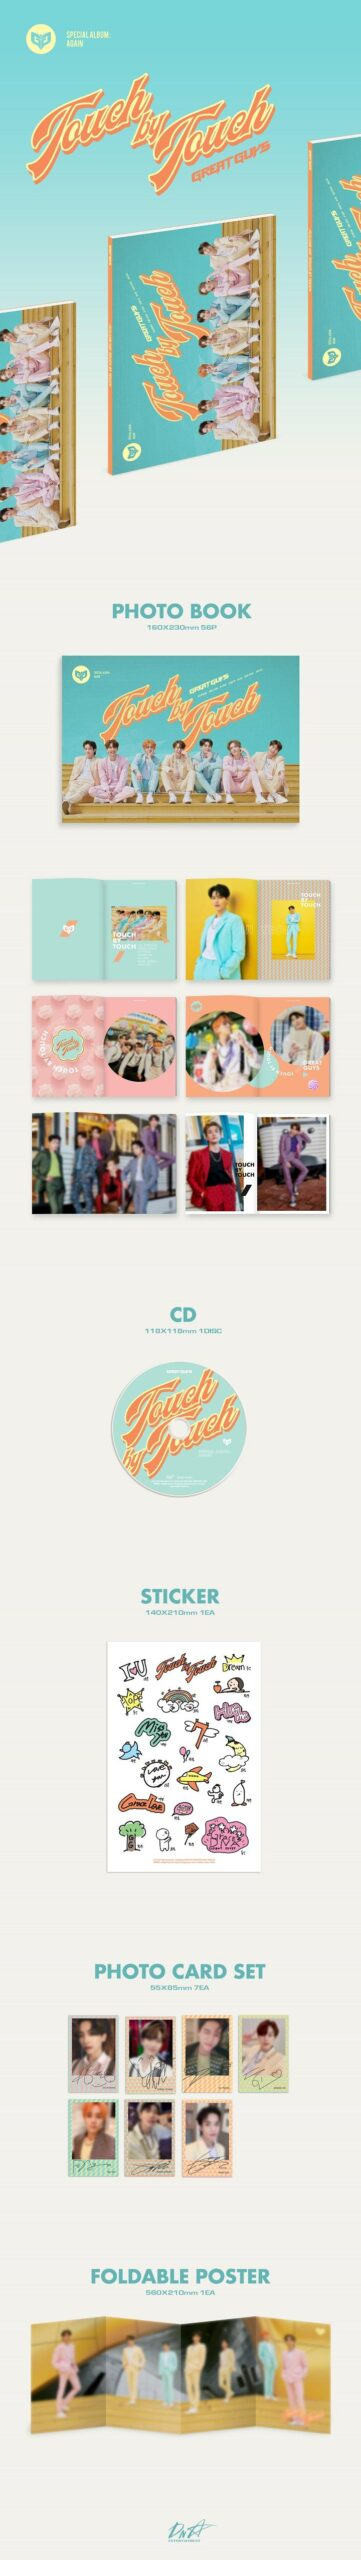 GREAT GUYS Touch by Touch Special Album AGAIN 1